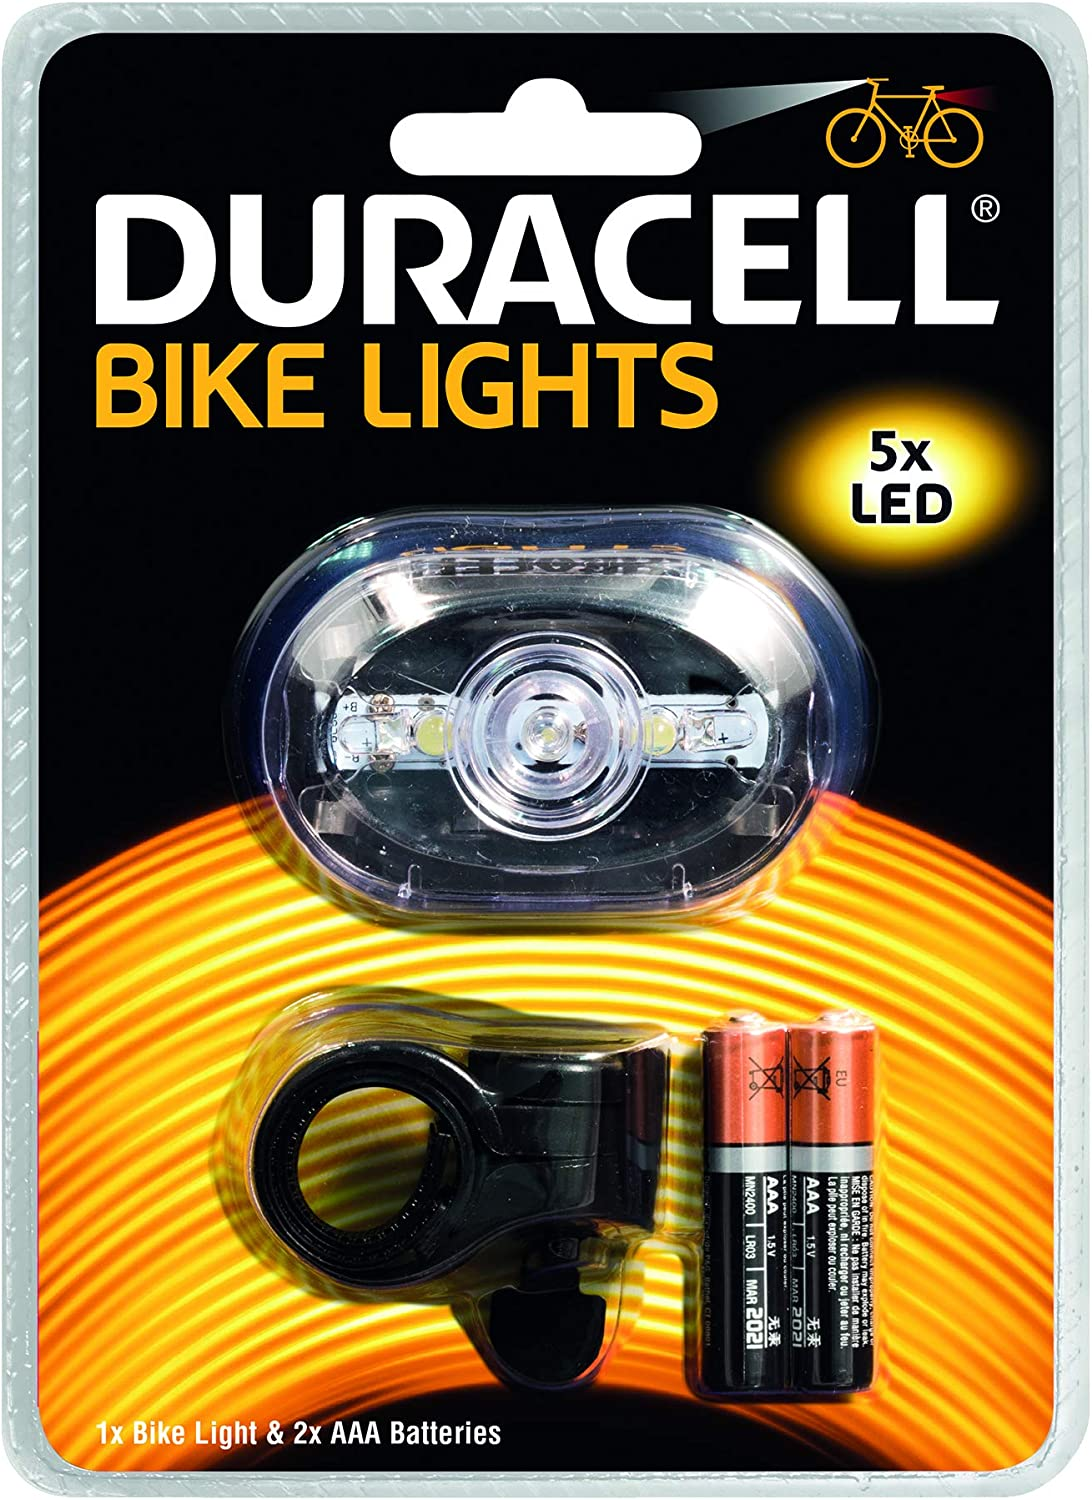 Duracell Front Bike Lights LED Bright Bicycle Light BIK-F03WDU